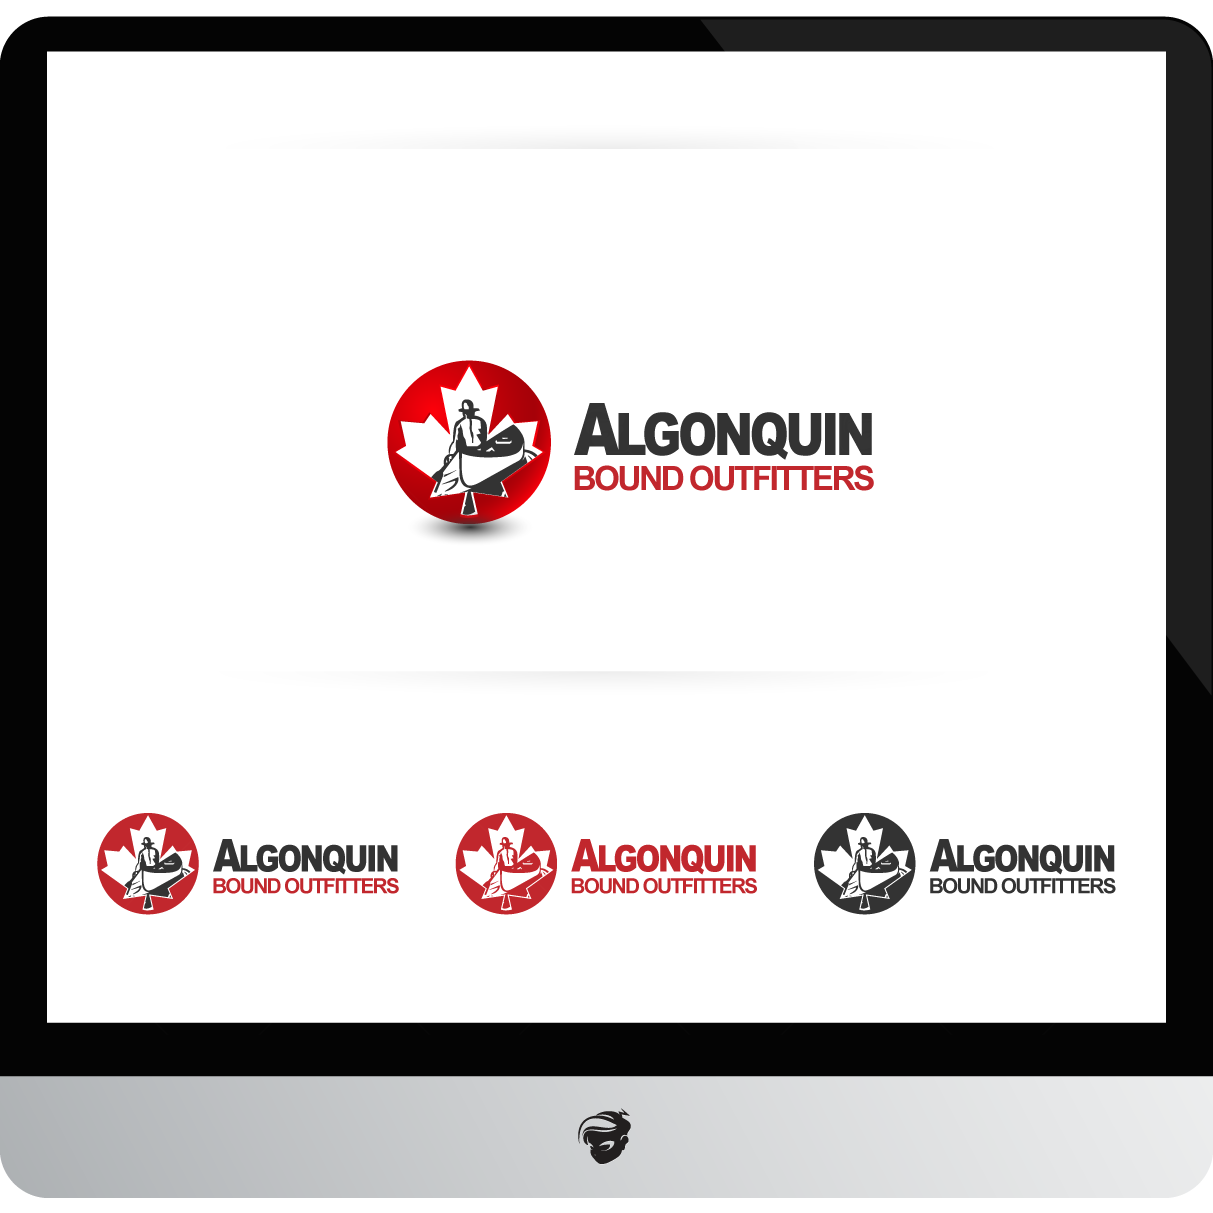 Logo Design by zesthar - Entry No. 94 in the Logo Design Contest Captivating Logo Design for Algonquin Bound Outfitters.